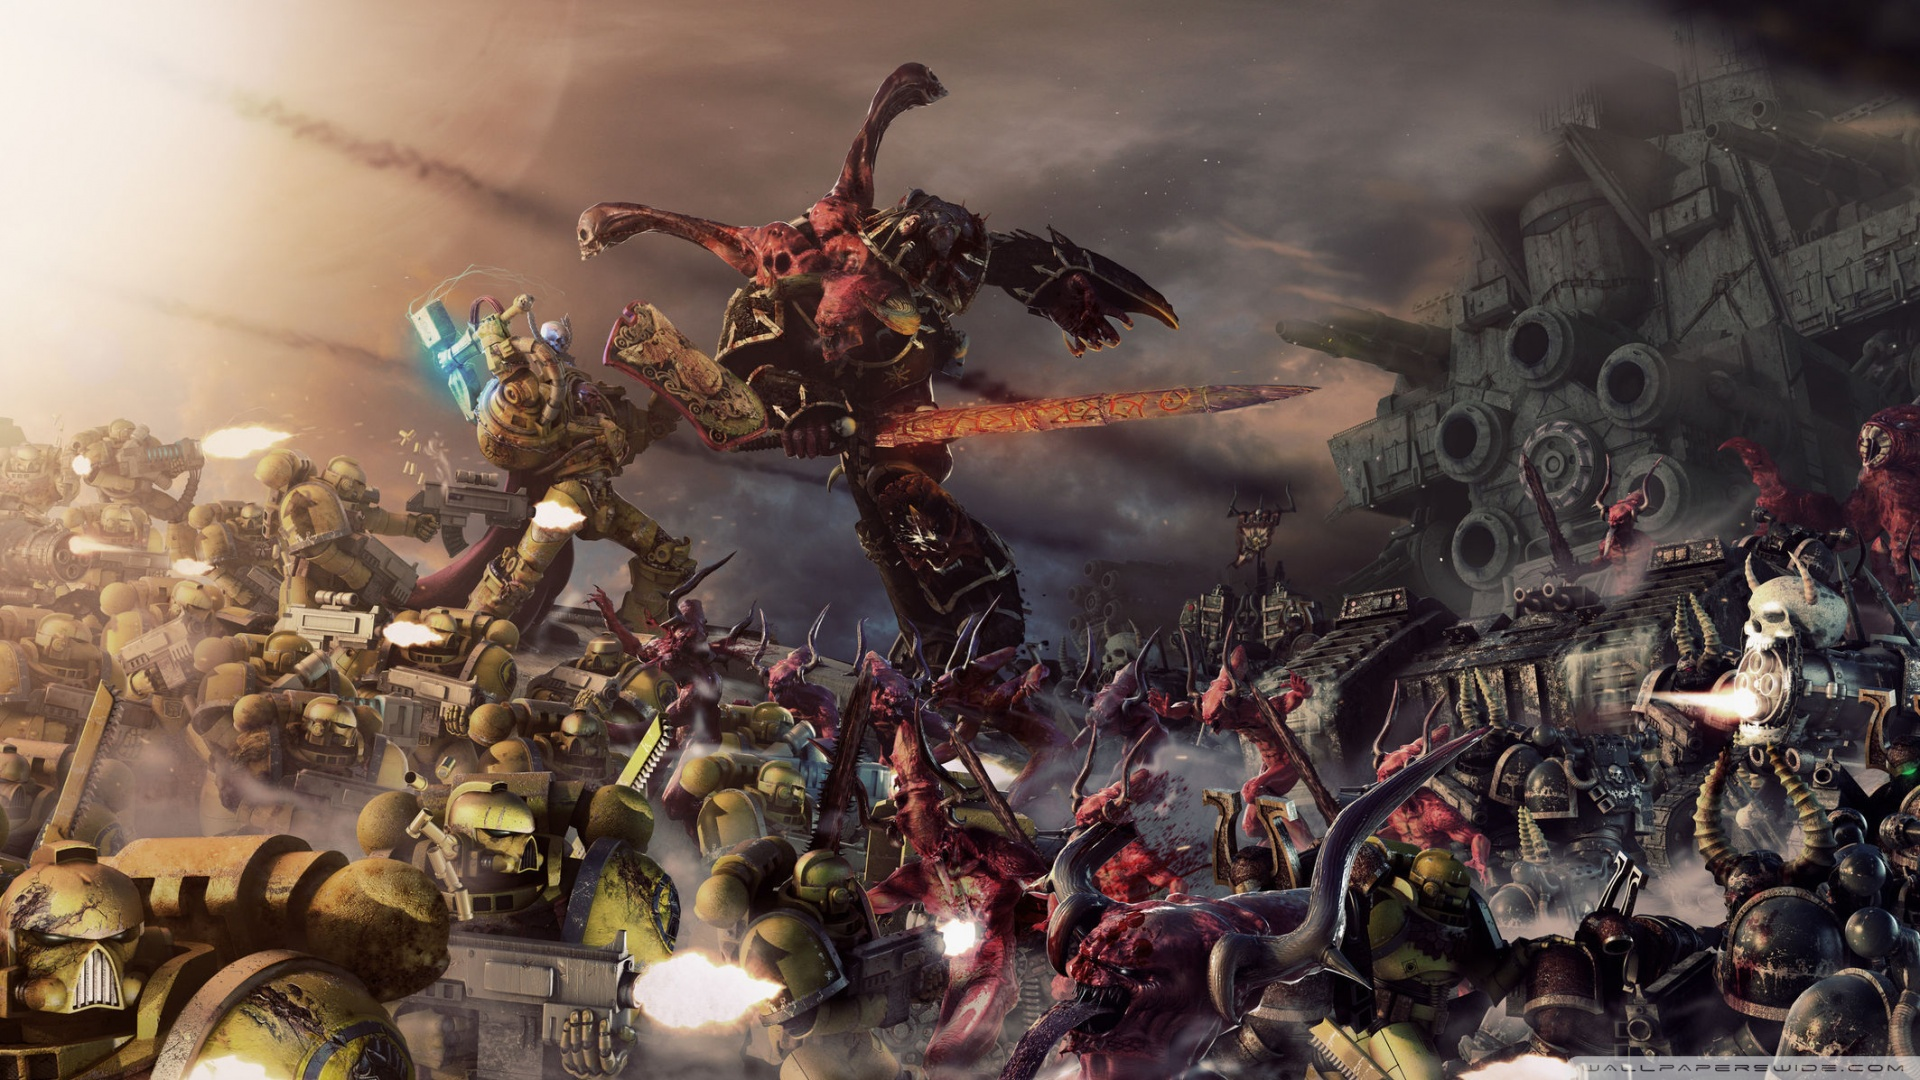 Warhammer 40k Wallpapers Video Game Hq Warhammer 40k Pictures 4k Wallpapers 2019